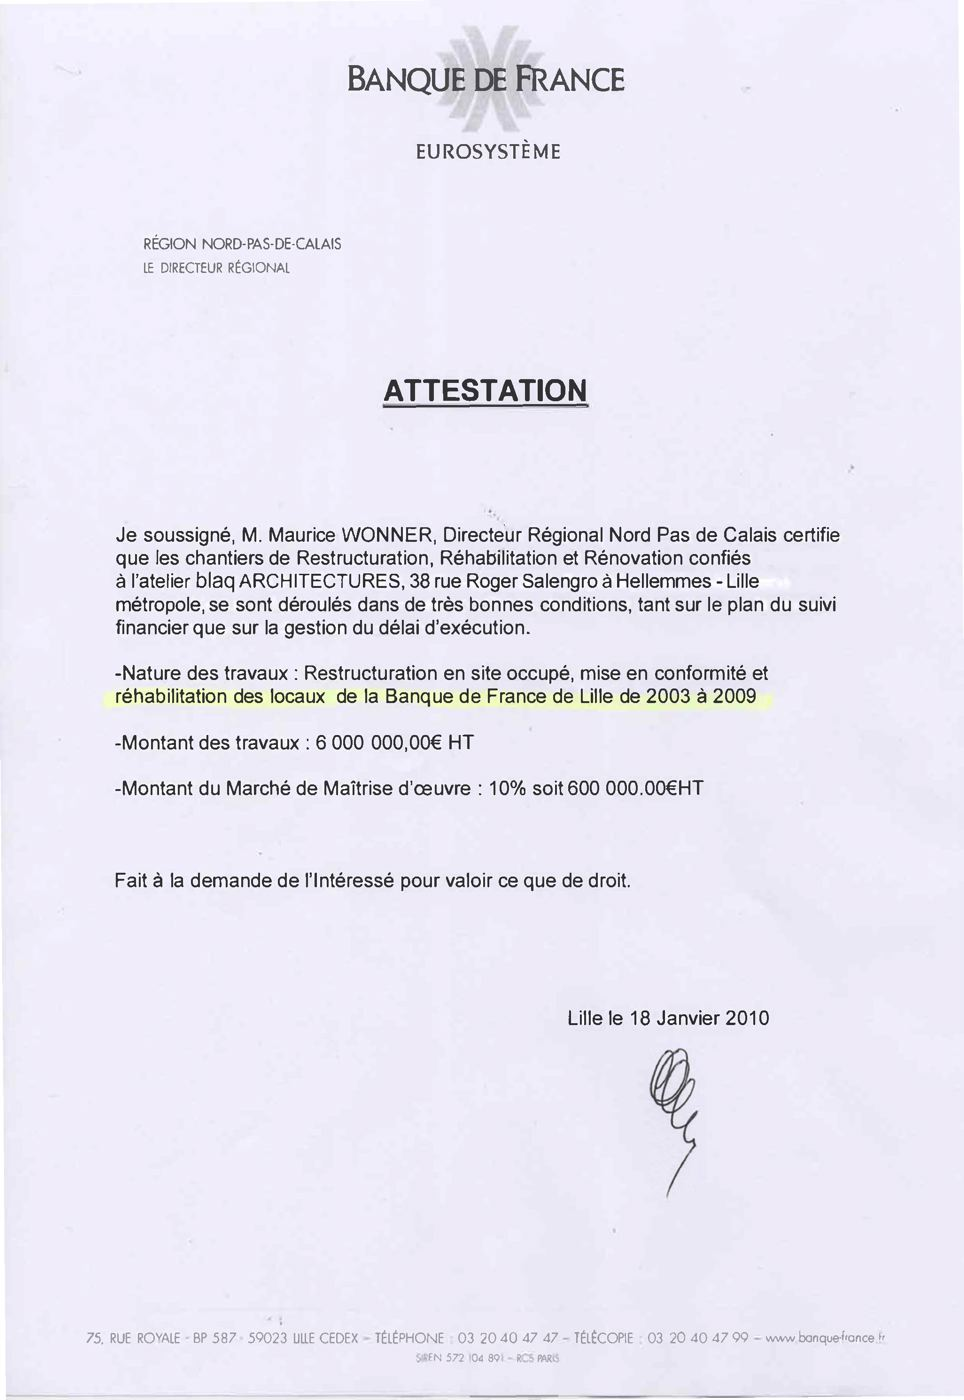 Banque de france attestation BDF.jpg